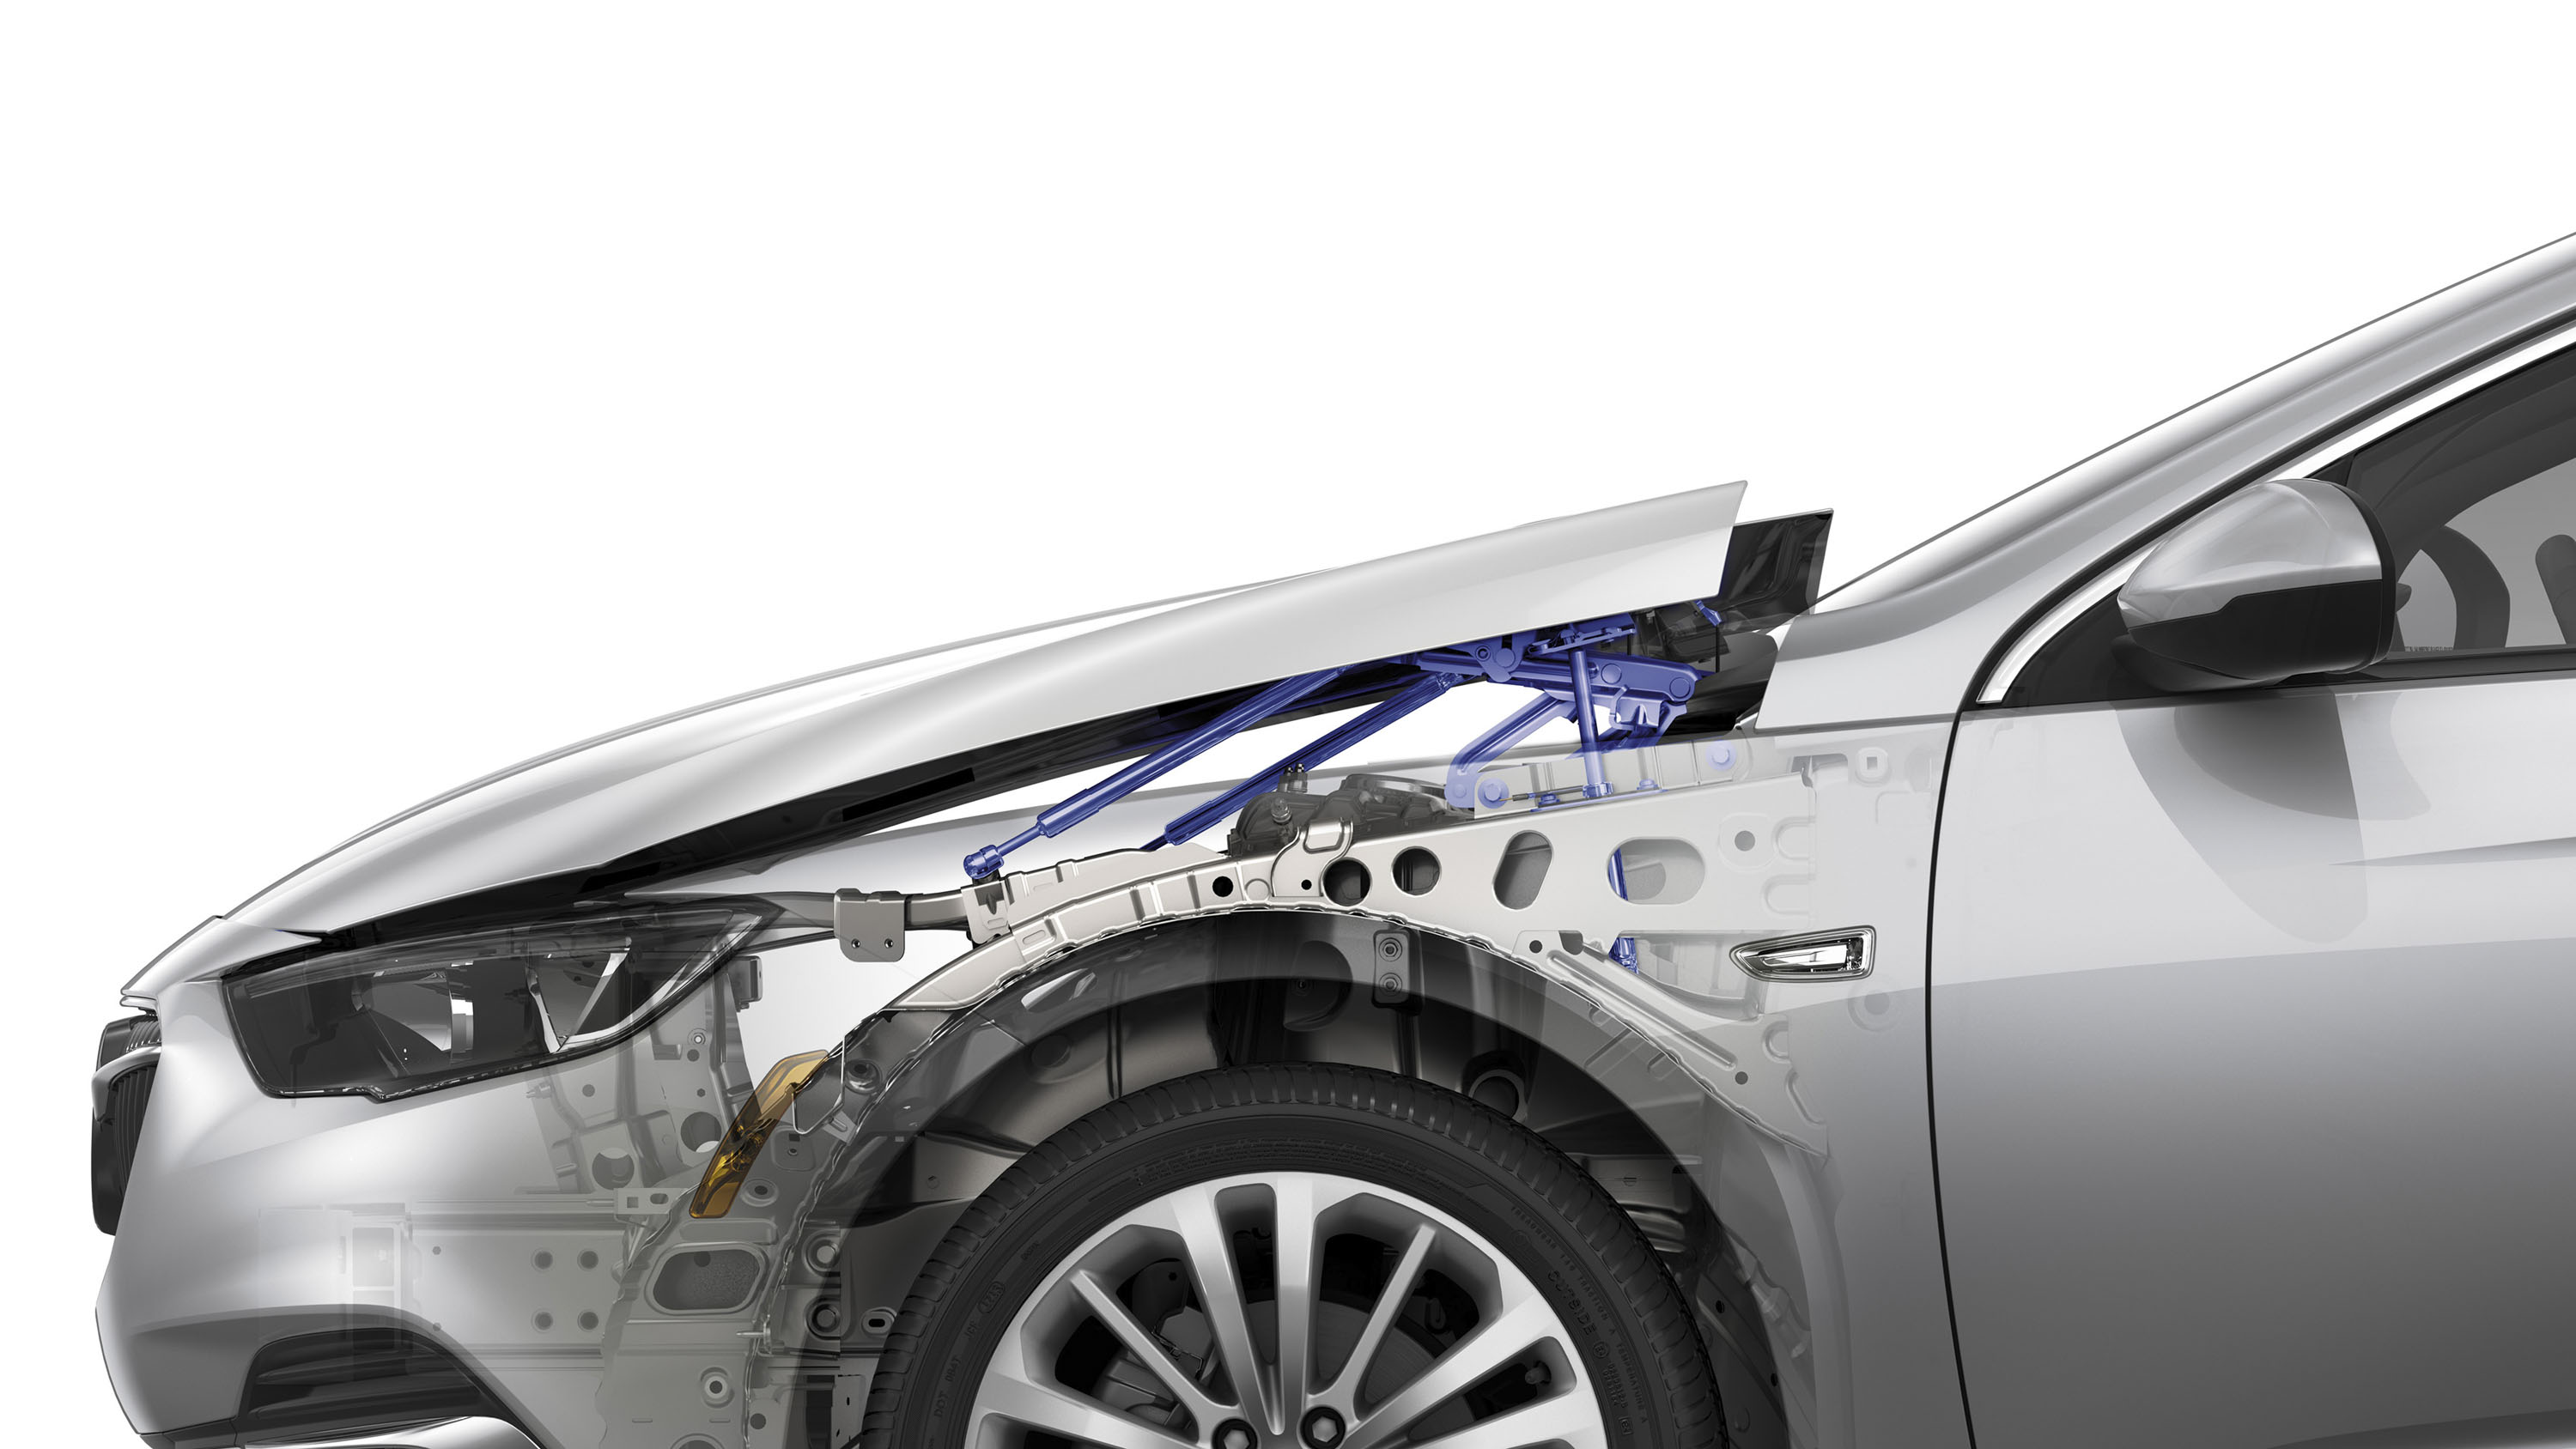 Buick Regal: Safety System Check